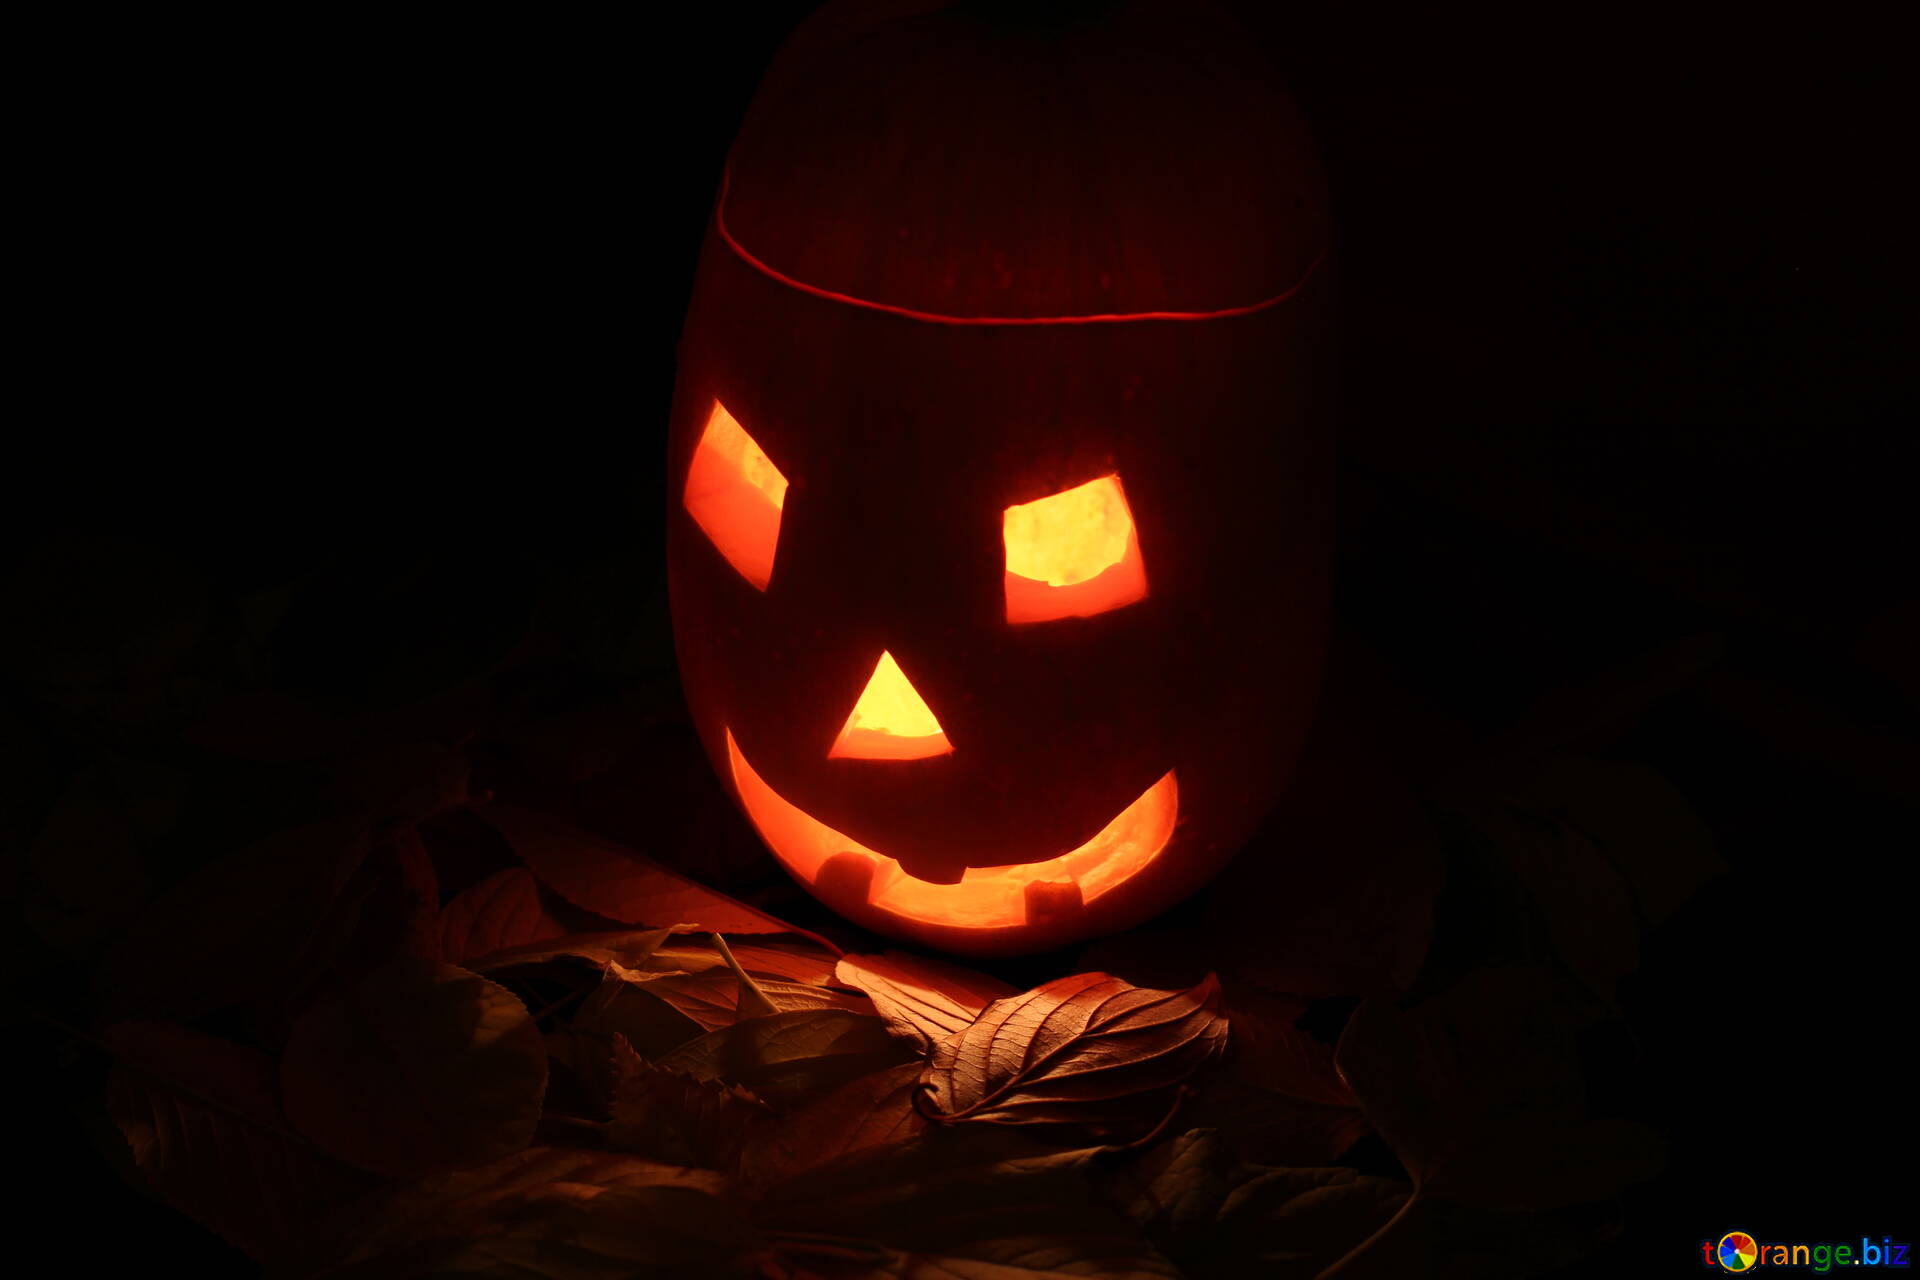 download free image picture scary halloween in hd wallpaper size 1920px